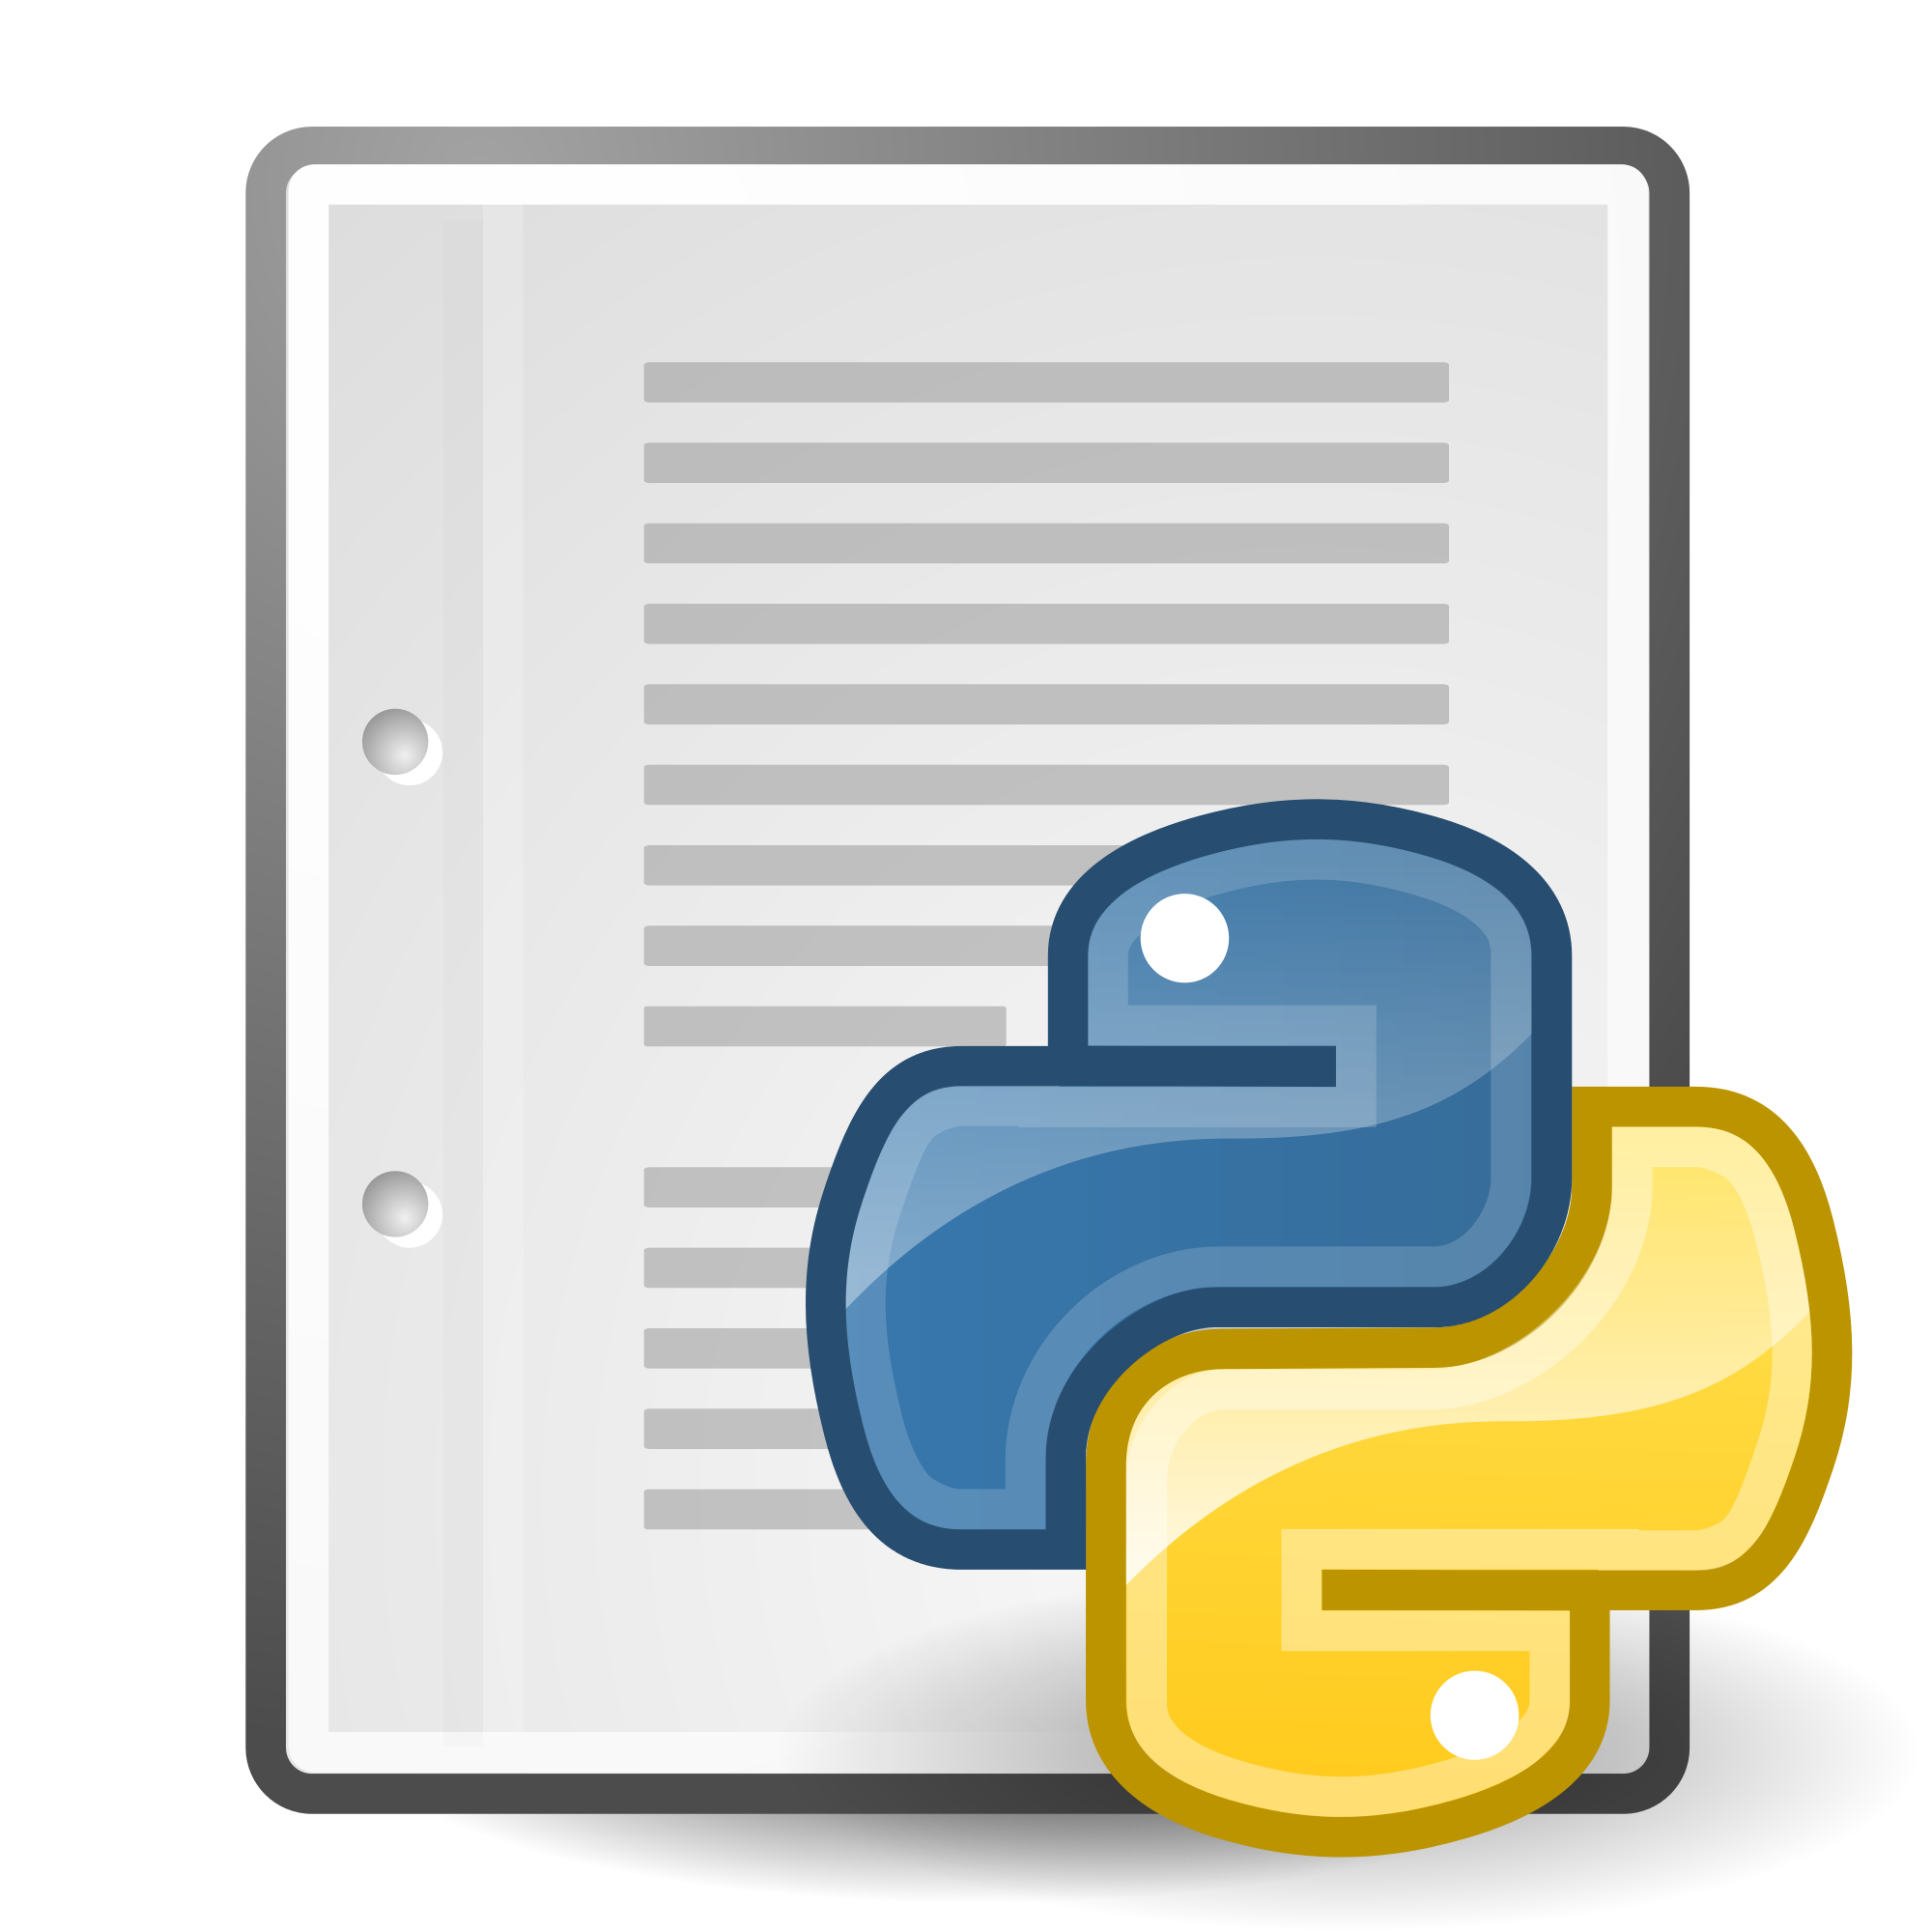 python clipart module 10 free Cliparts | Download images ...